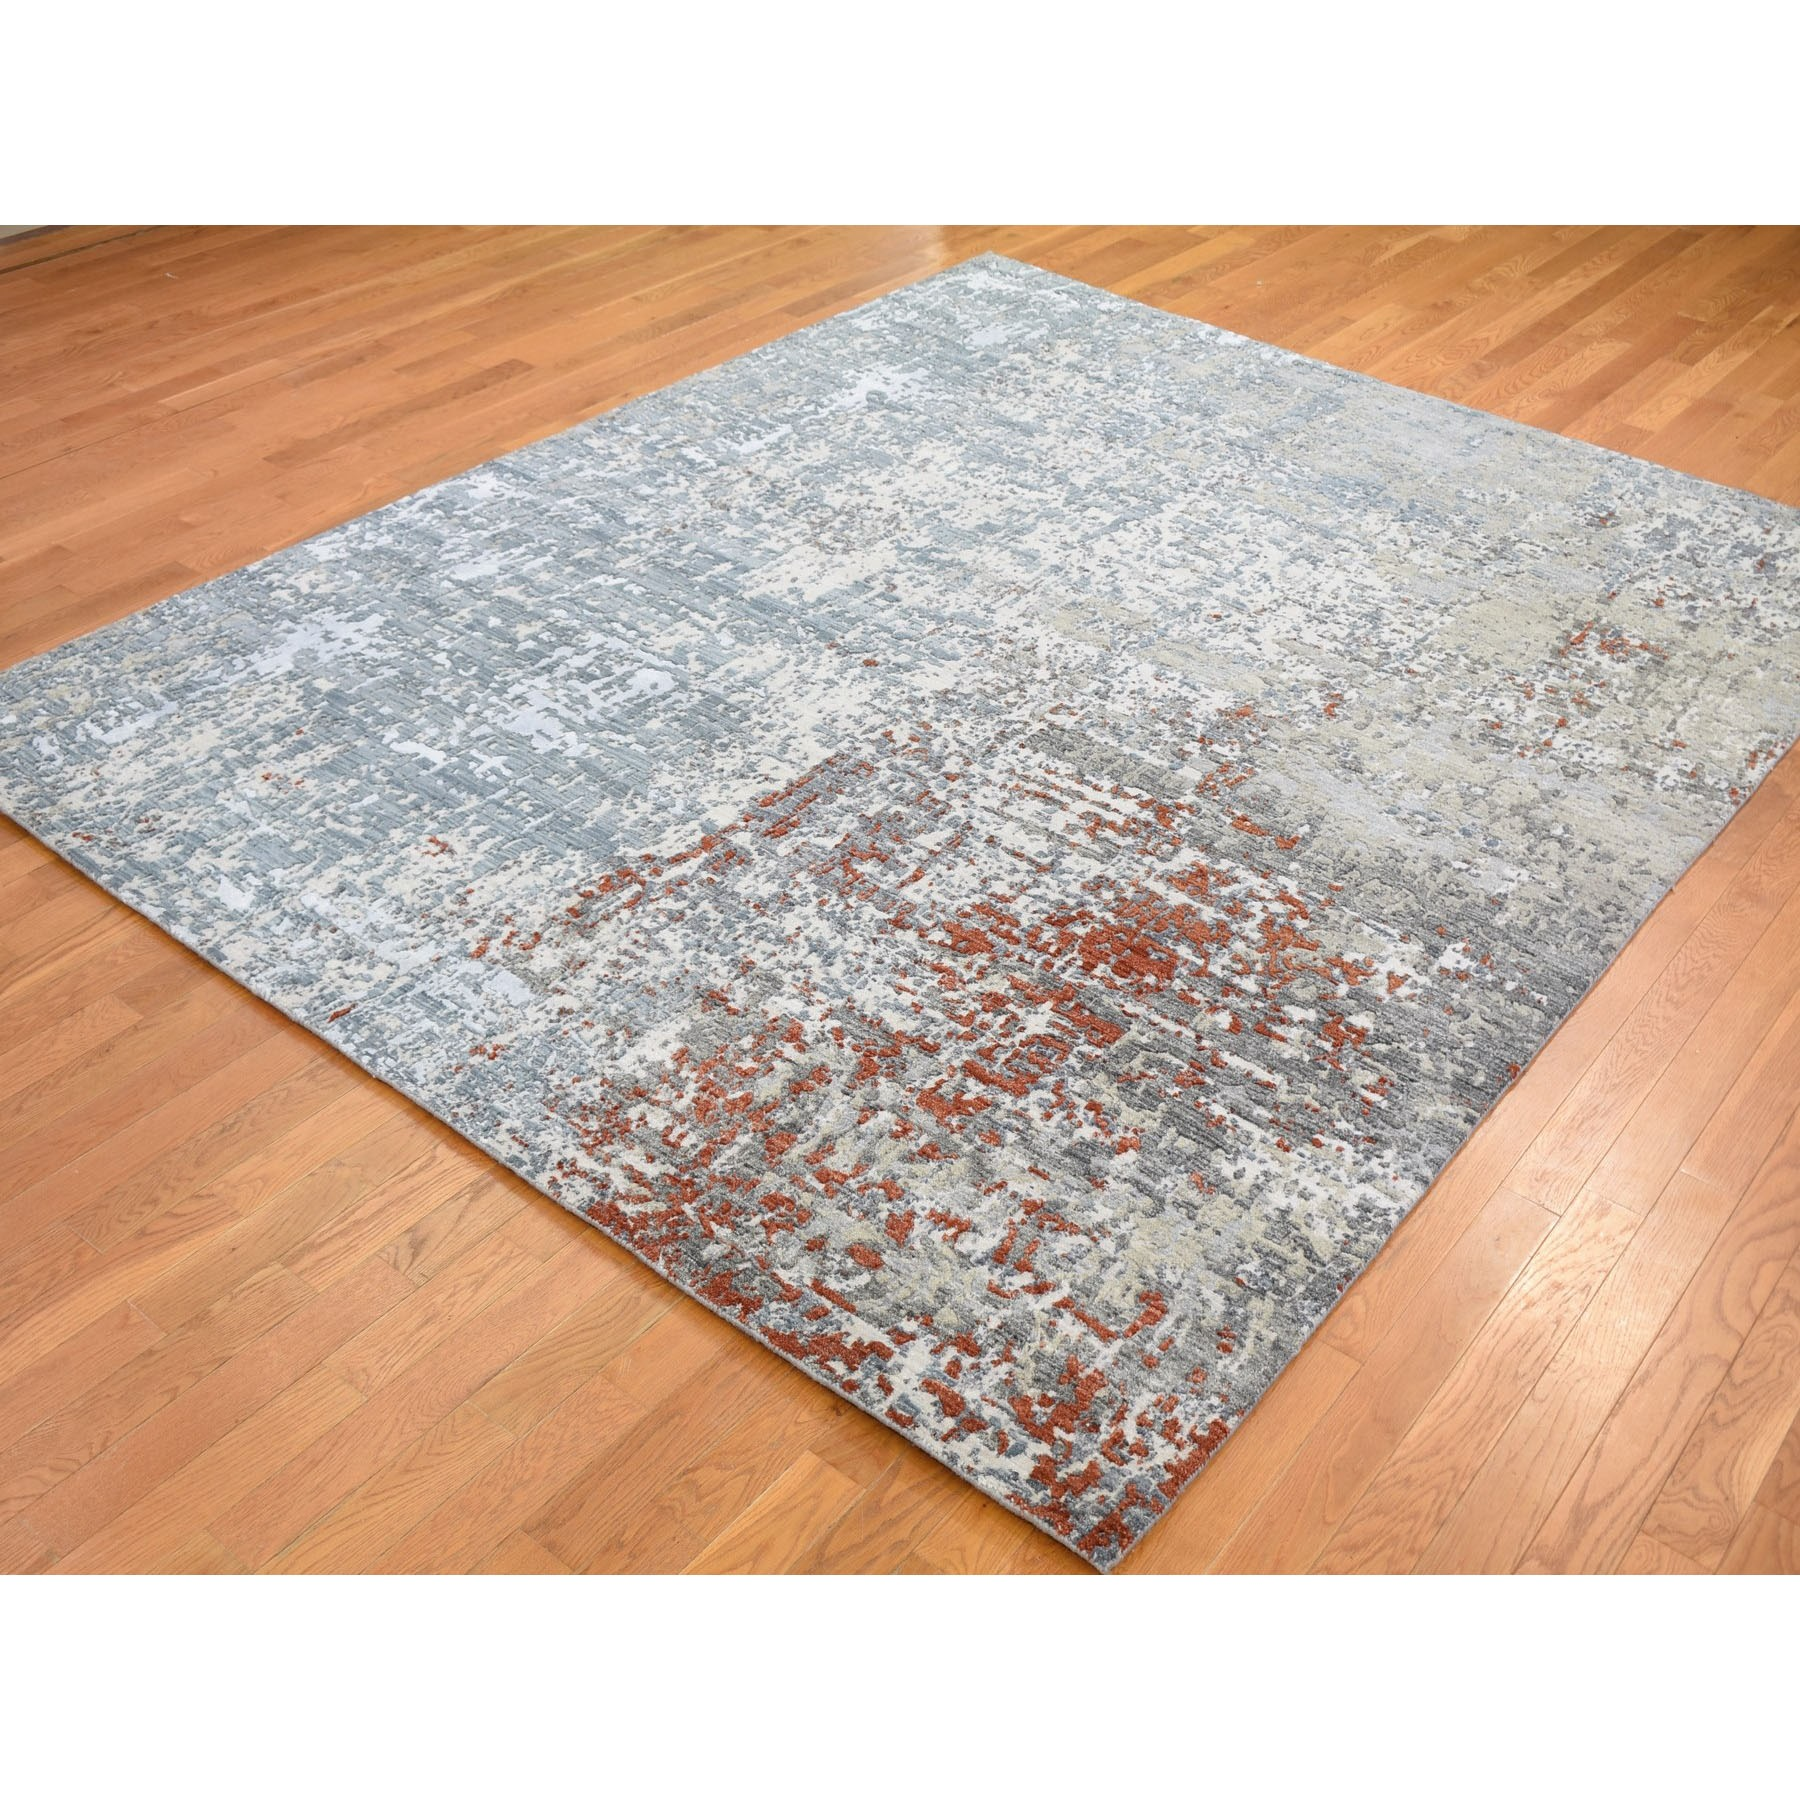 "8'x10'1"" Terracotta Abstract Design Wool And Silk Hi-Low Pile Denser Weave Hand Knotted Oriental Rug"